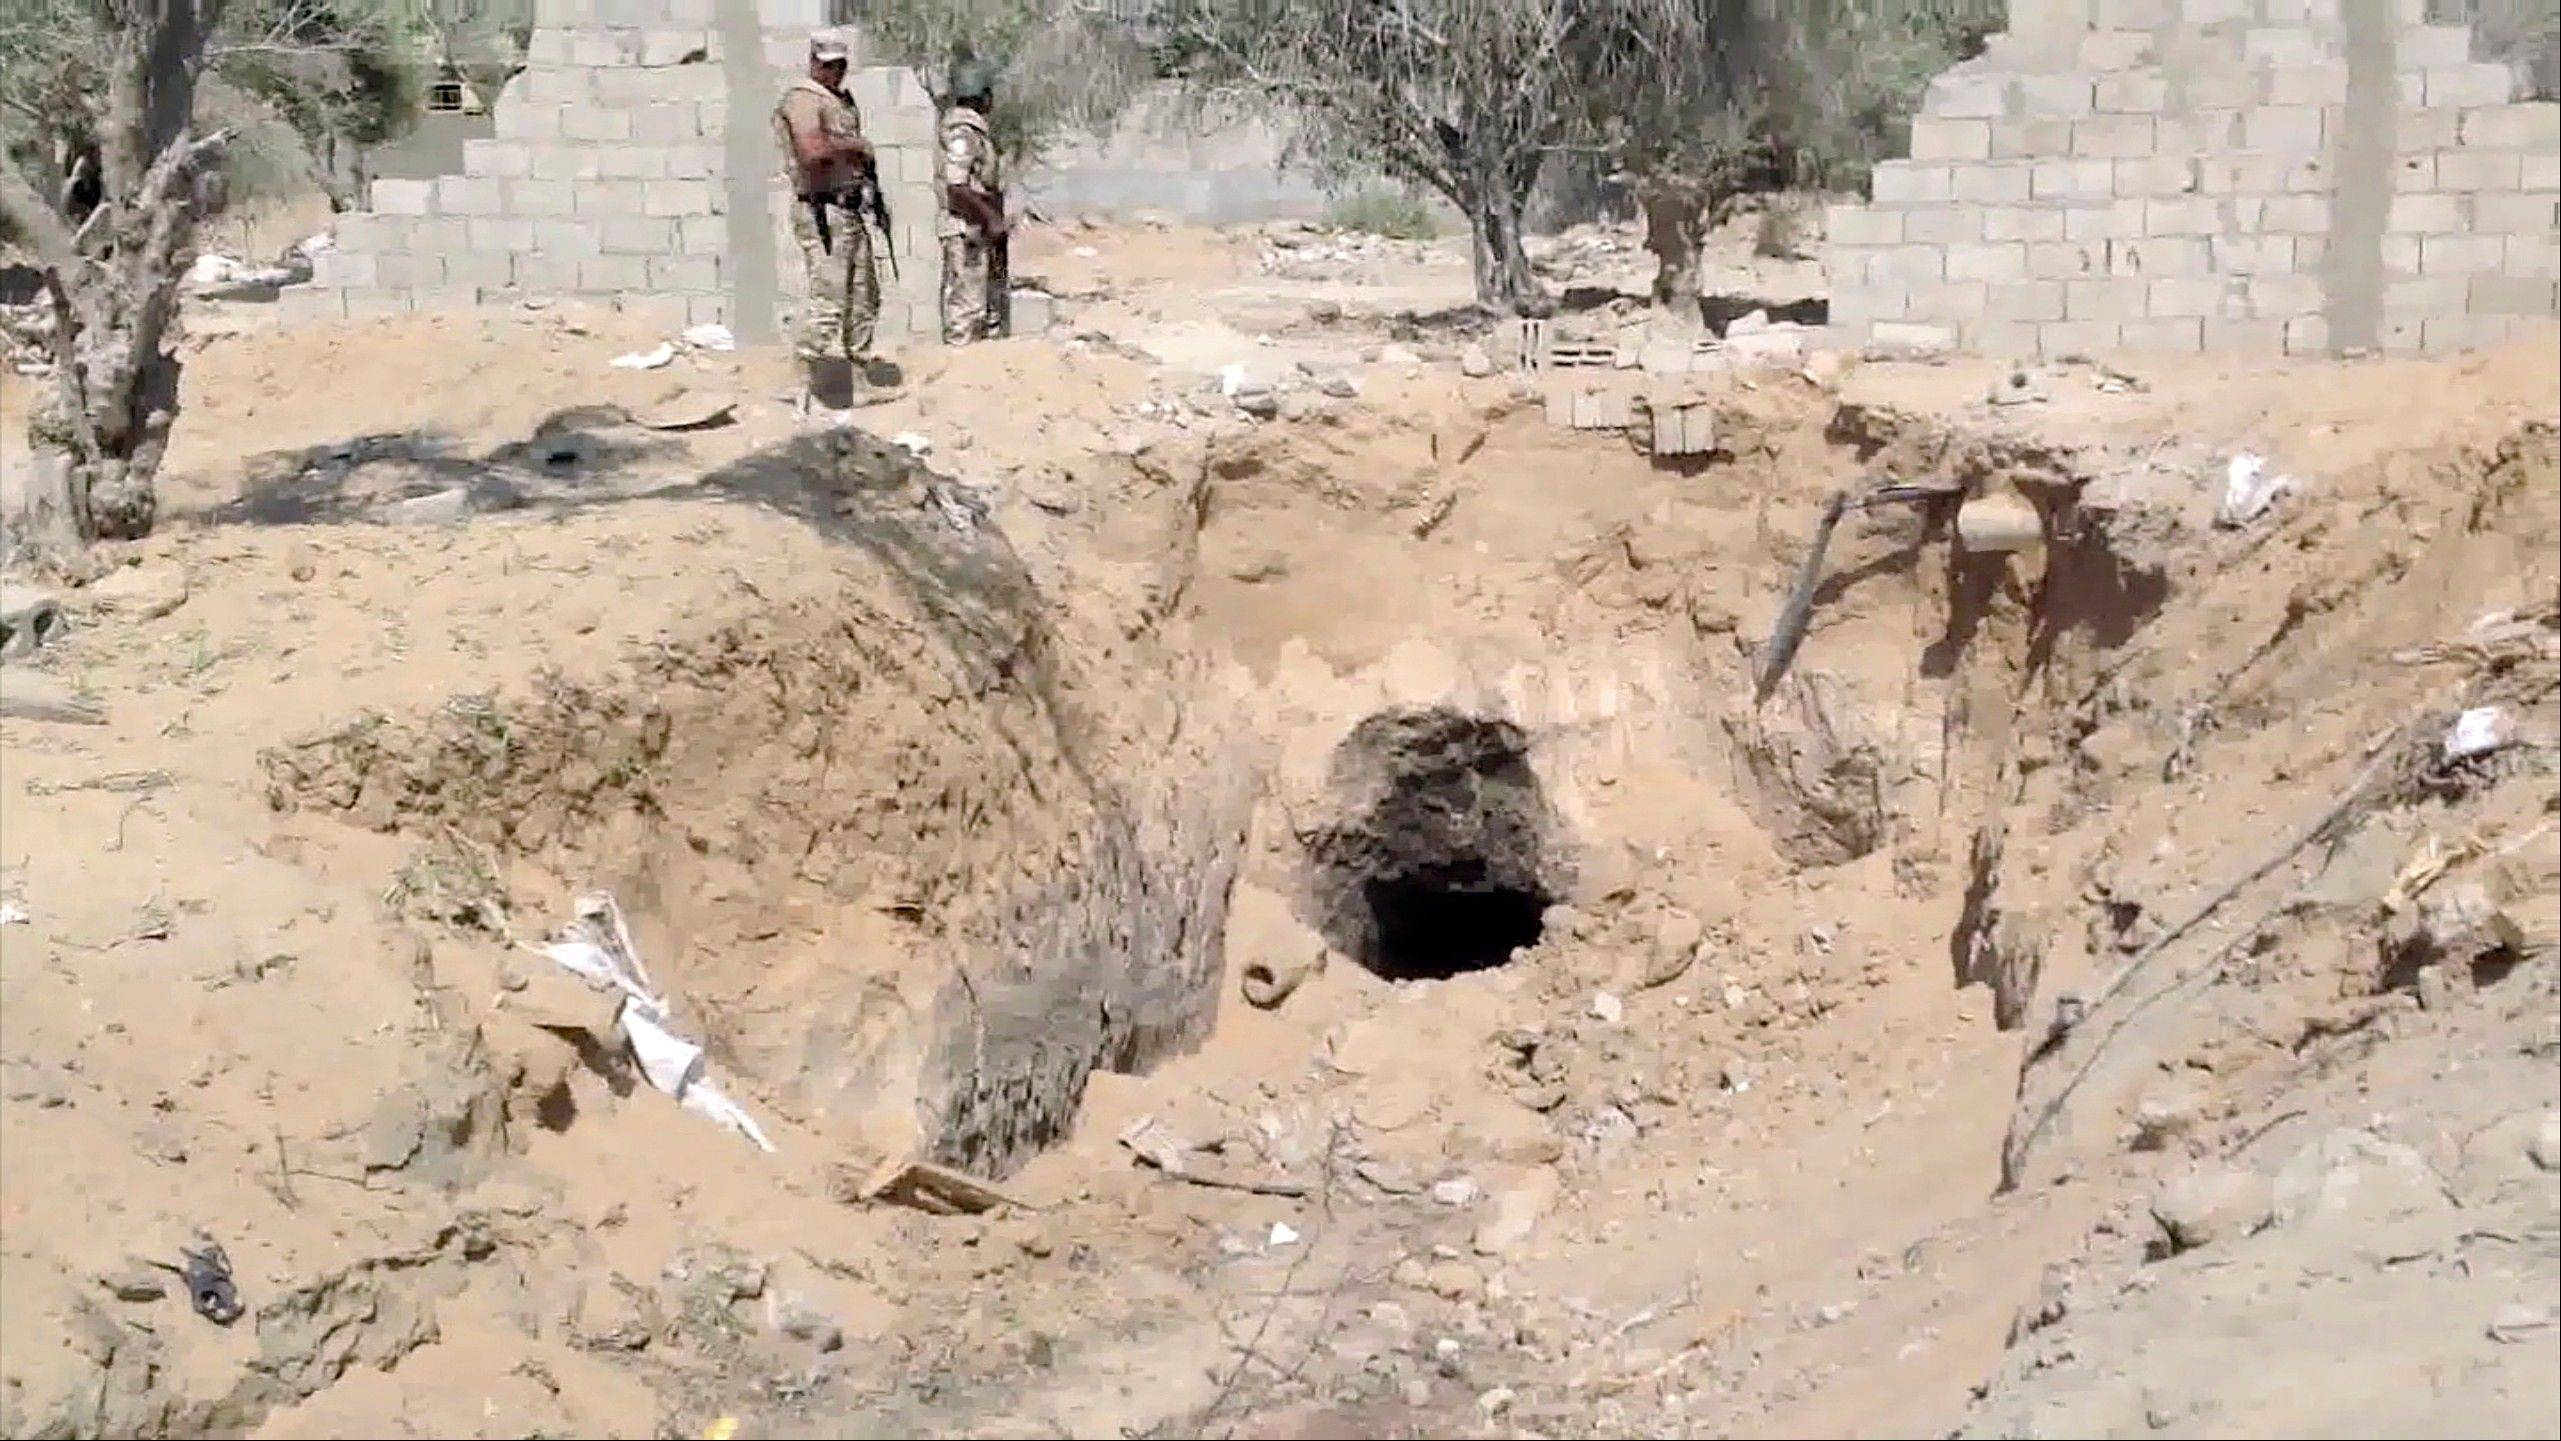 Egyptian Army personnel supervise the destruction of tunnels between Egypt and the Gaza Strip at the border, near the town of Rafah, northern Sinai, Tuesday. Tunnels between Egypt and the Gaza have been used to smuggle everything from weapons, to cigarettes and fuel but now the Egyptian military appears determined to close the tunnels once and for all.